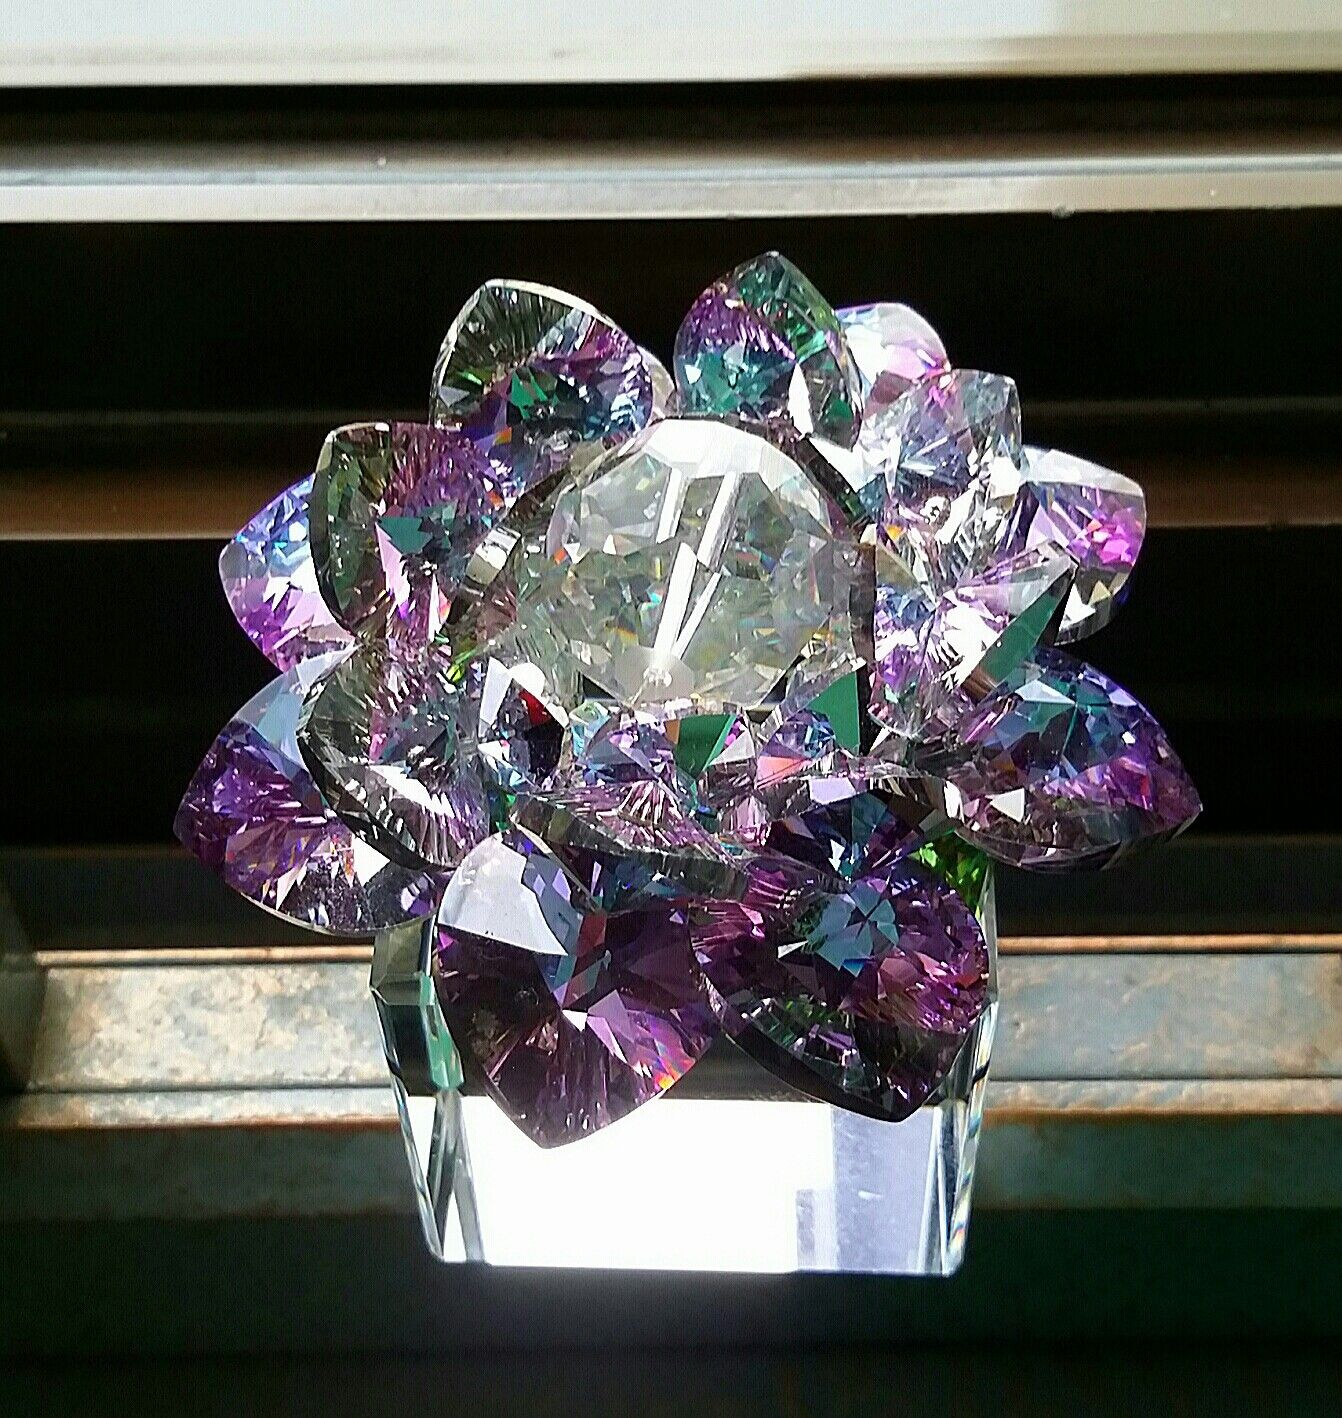 Sacred crystal lotus flower best for feng shui sacred crystal sacred crystal lotus flower best for feng shui mightylinksfo Image collections